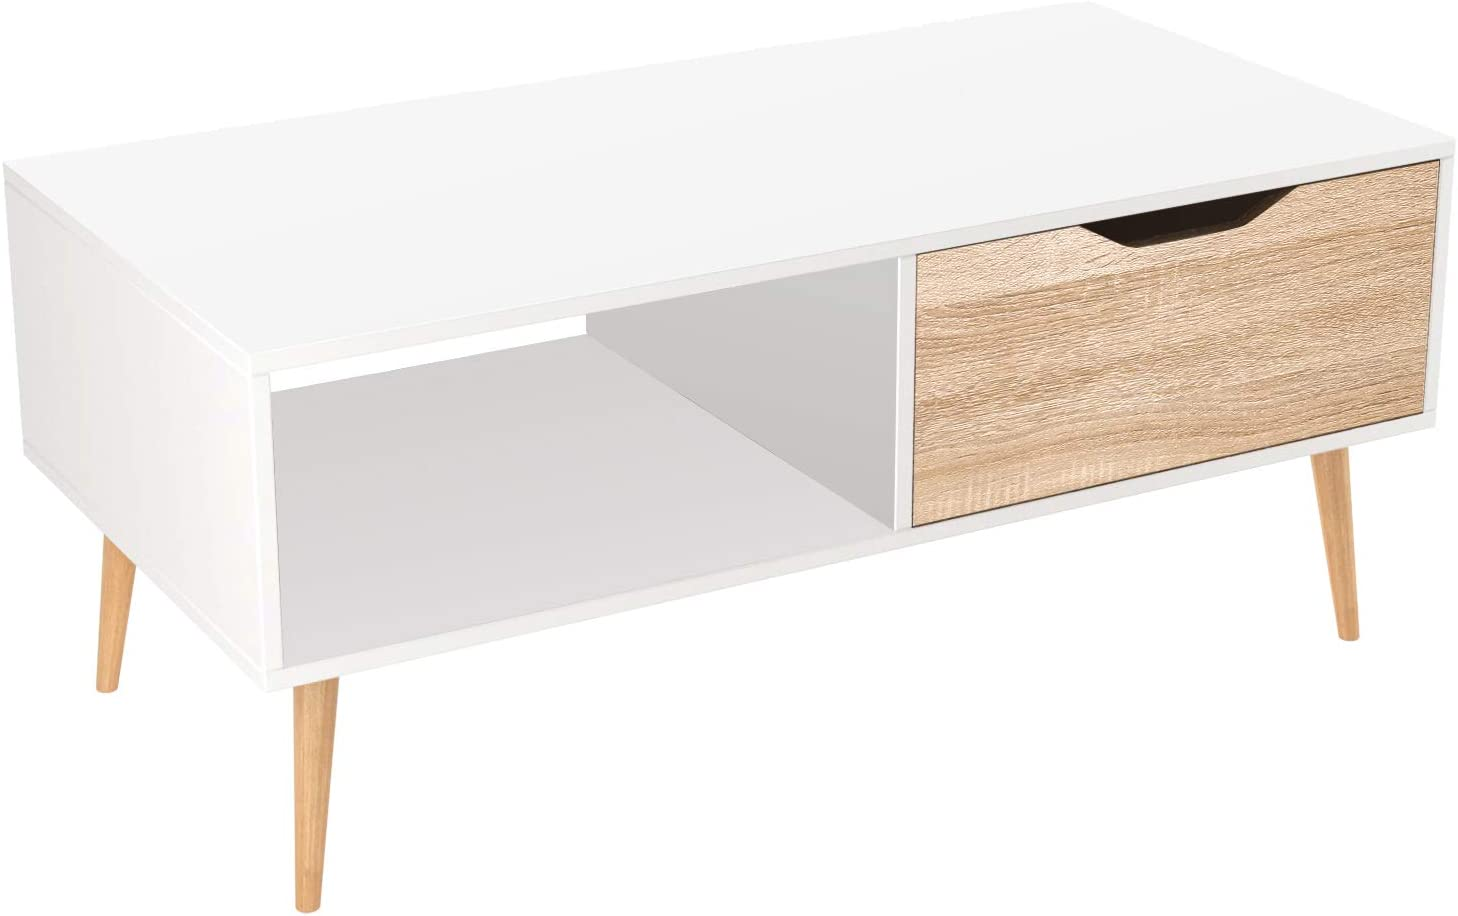 Homfa Table de Salon Scandinave Table Basse Café Bois pour Bureau TV 100x49.5x43cm (Blanc)